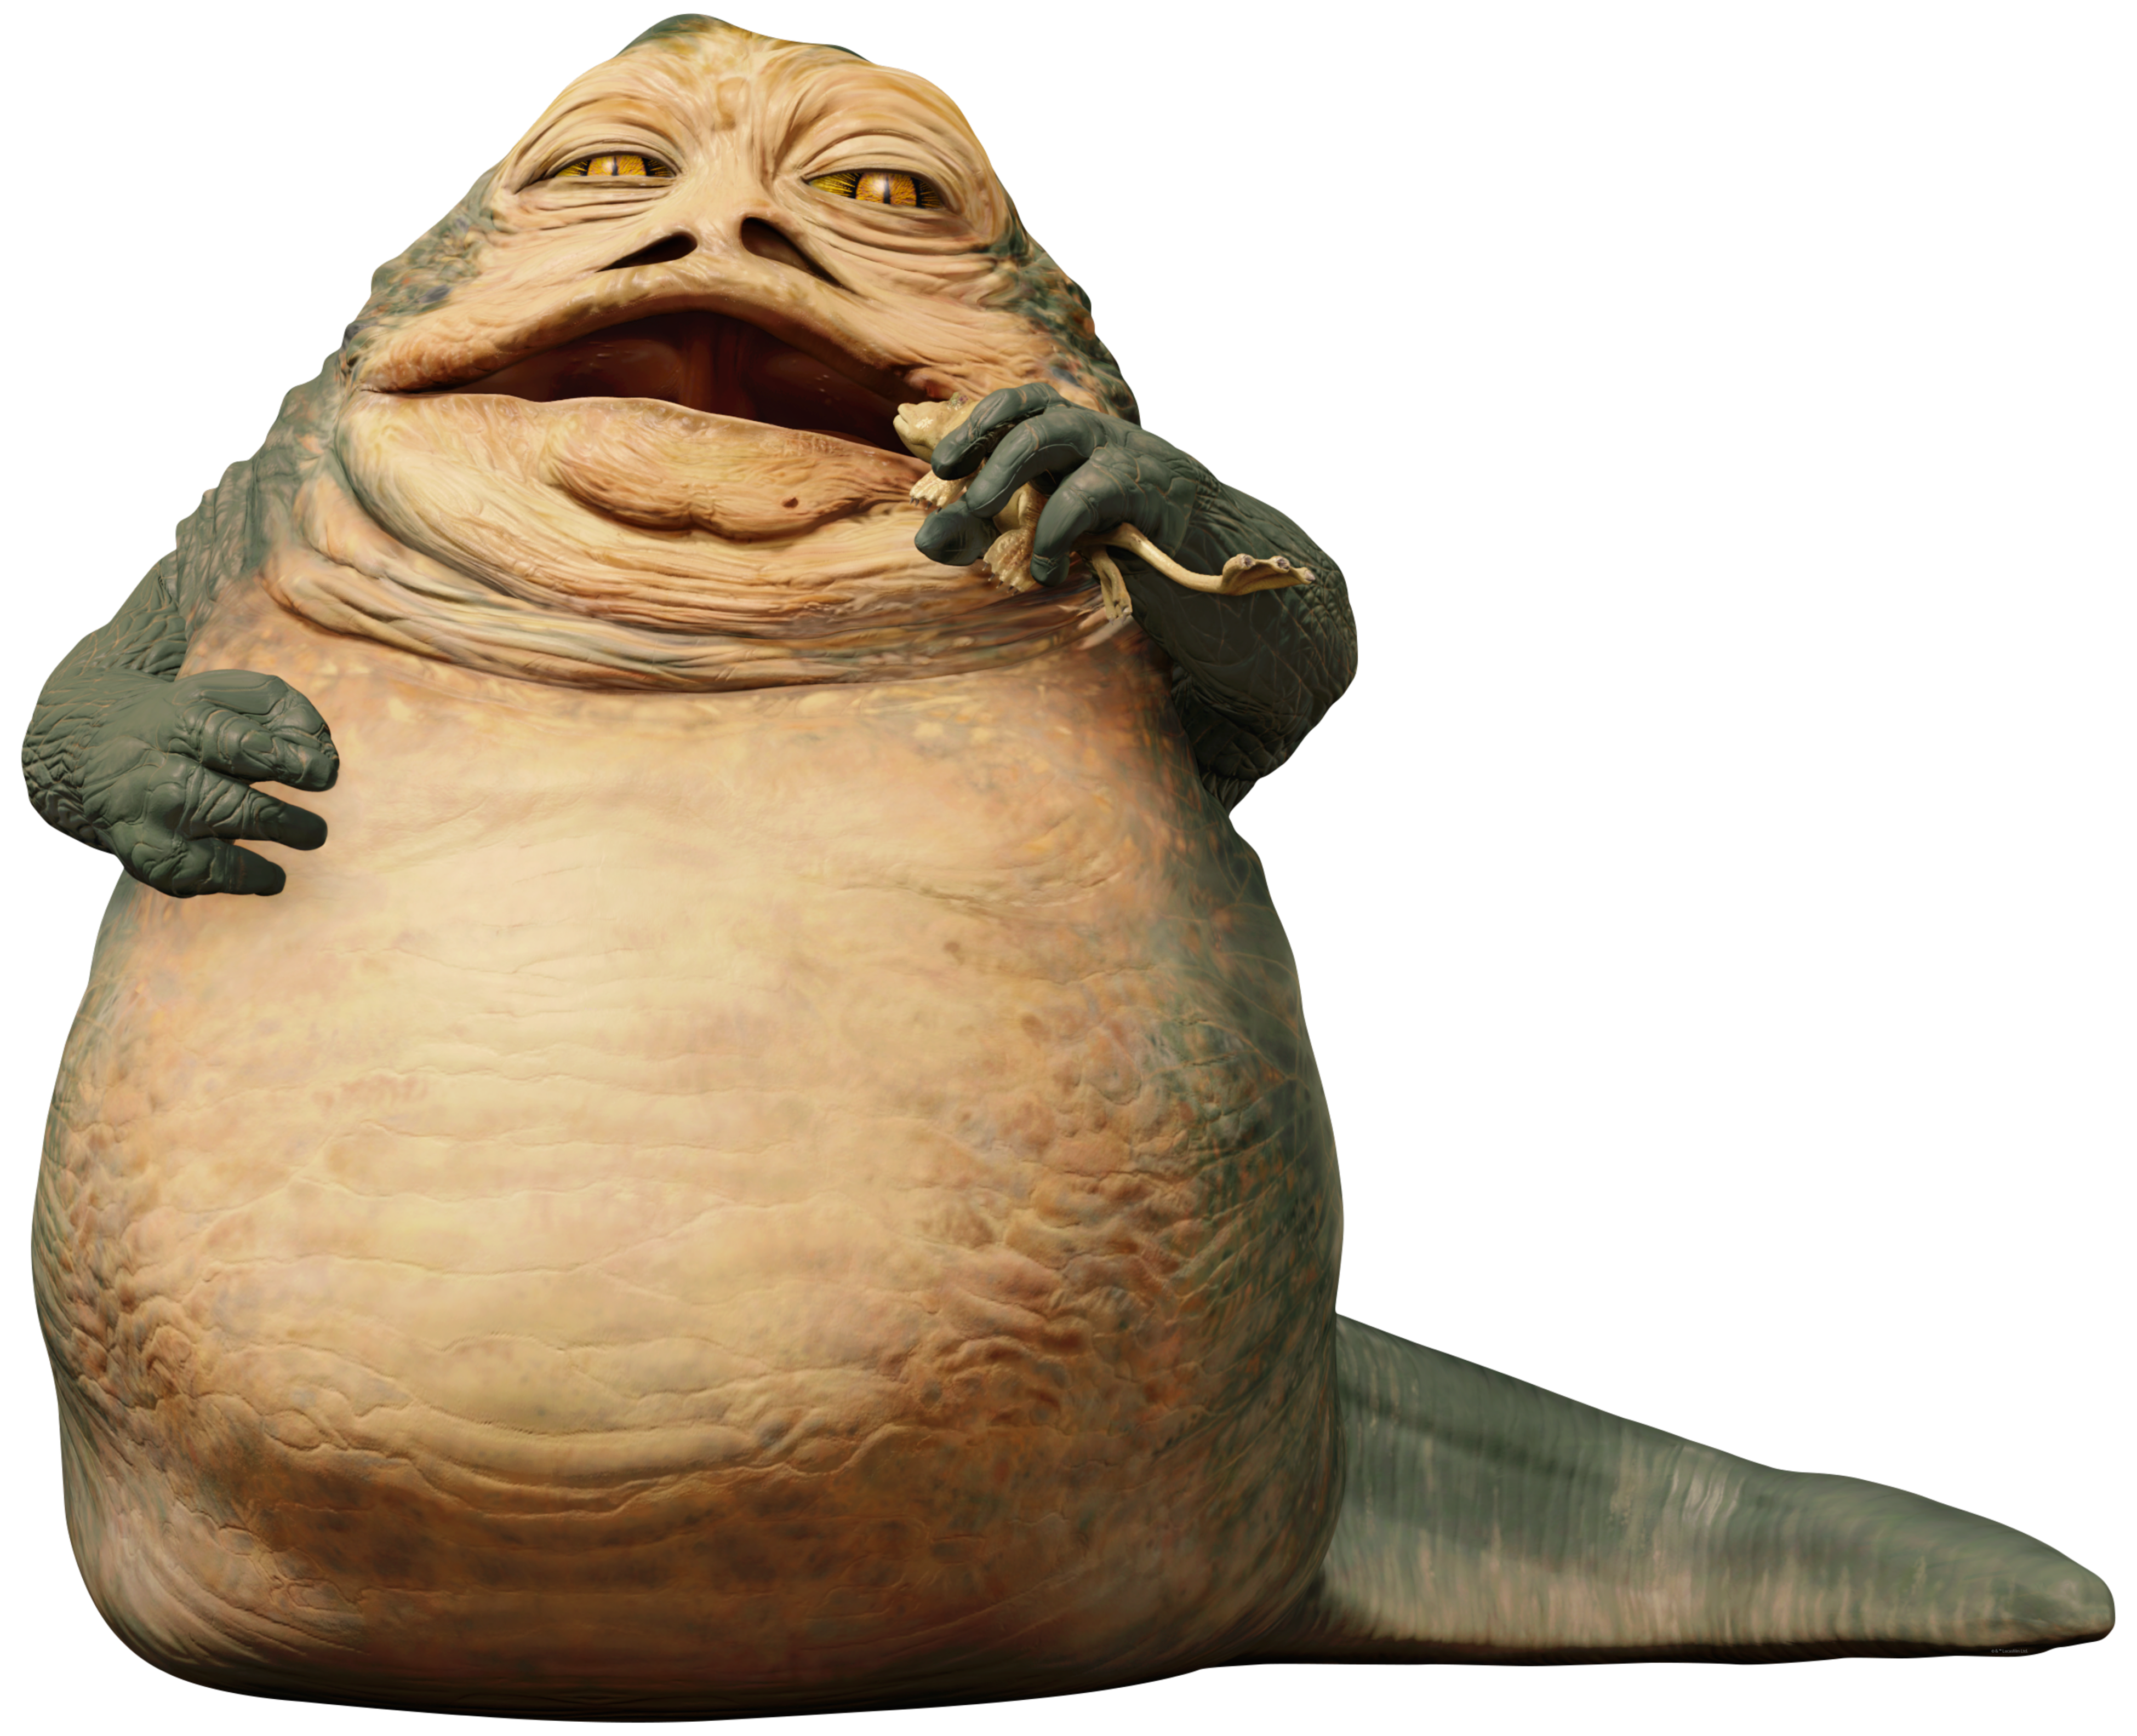 https://vignette3.wikia.nocookie.net/starwars/images/1/19/JabbaPromo.png/revision/latest?cb=20161110010925